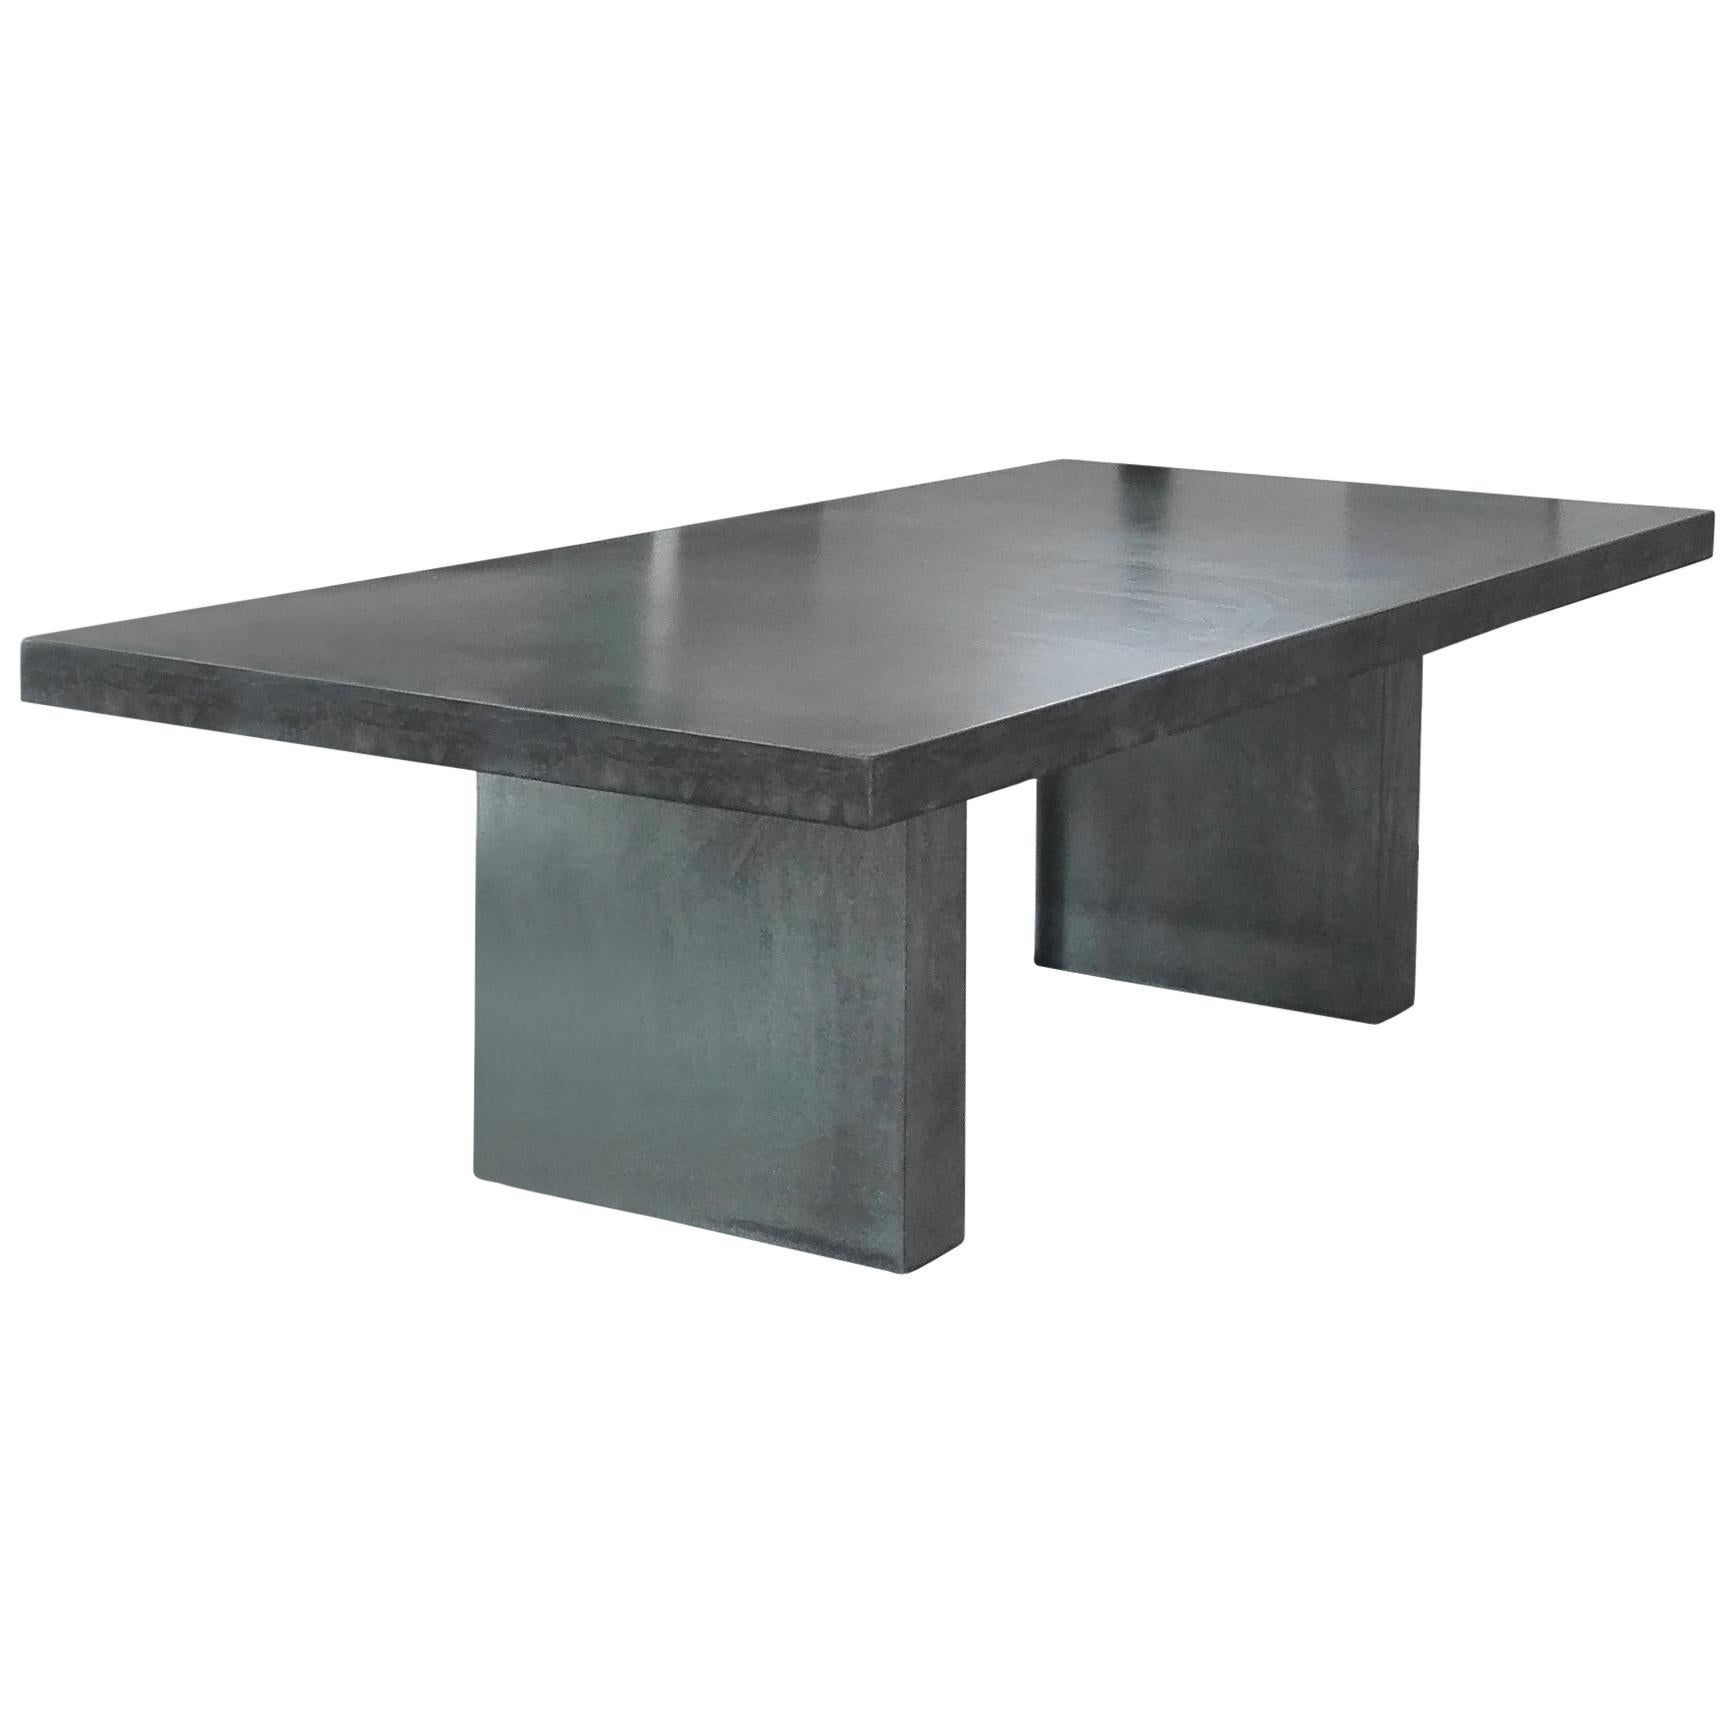 21st Century Giorgione 250, Concrete Dining Table, 100% Handcrafted in Italy